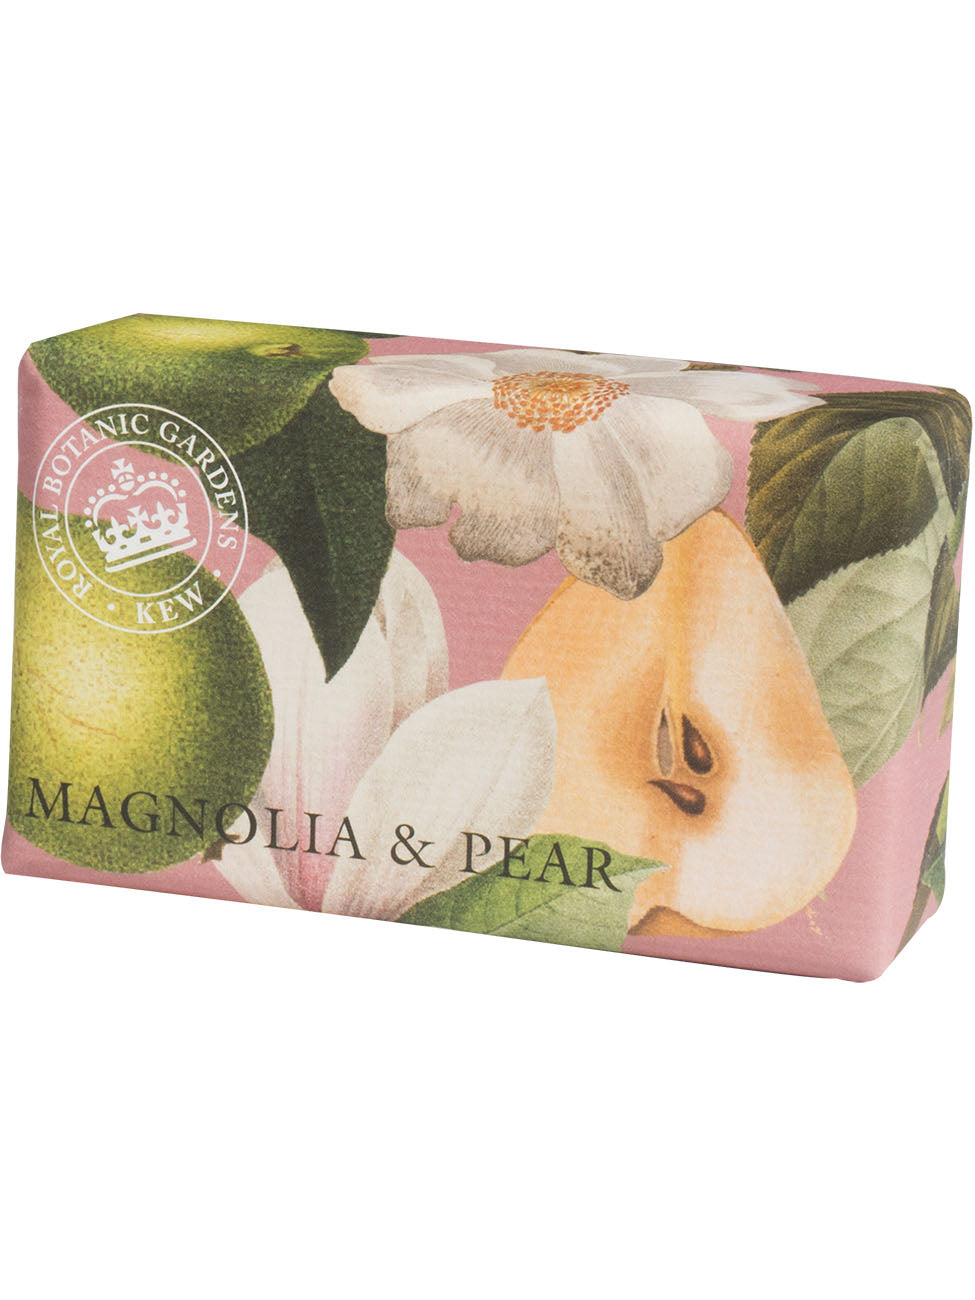 Royal Kew Gardens - Magnolia & Pear Soap